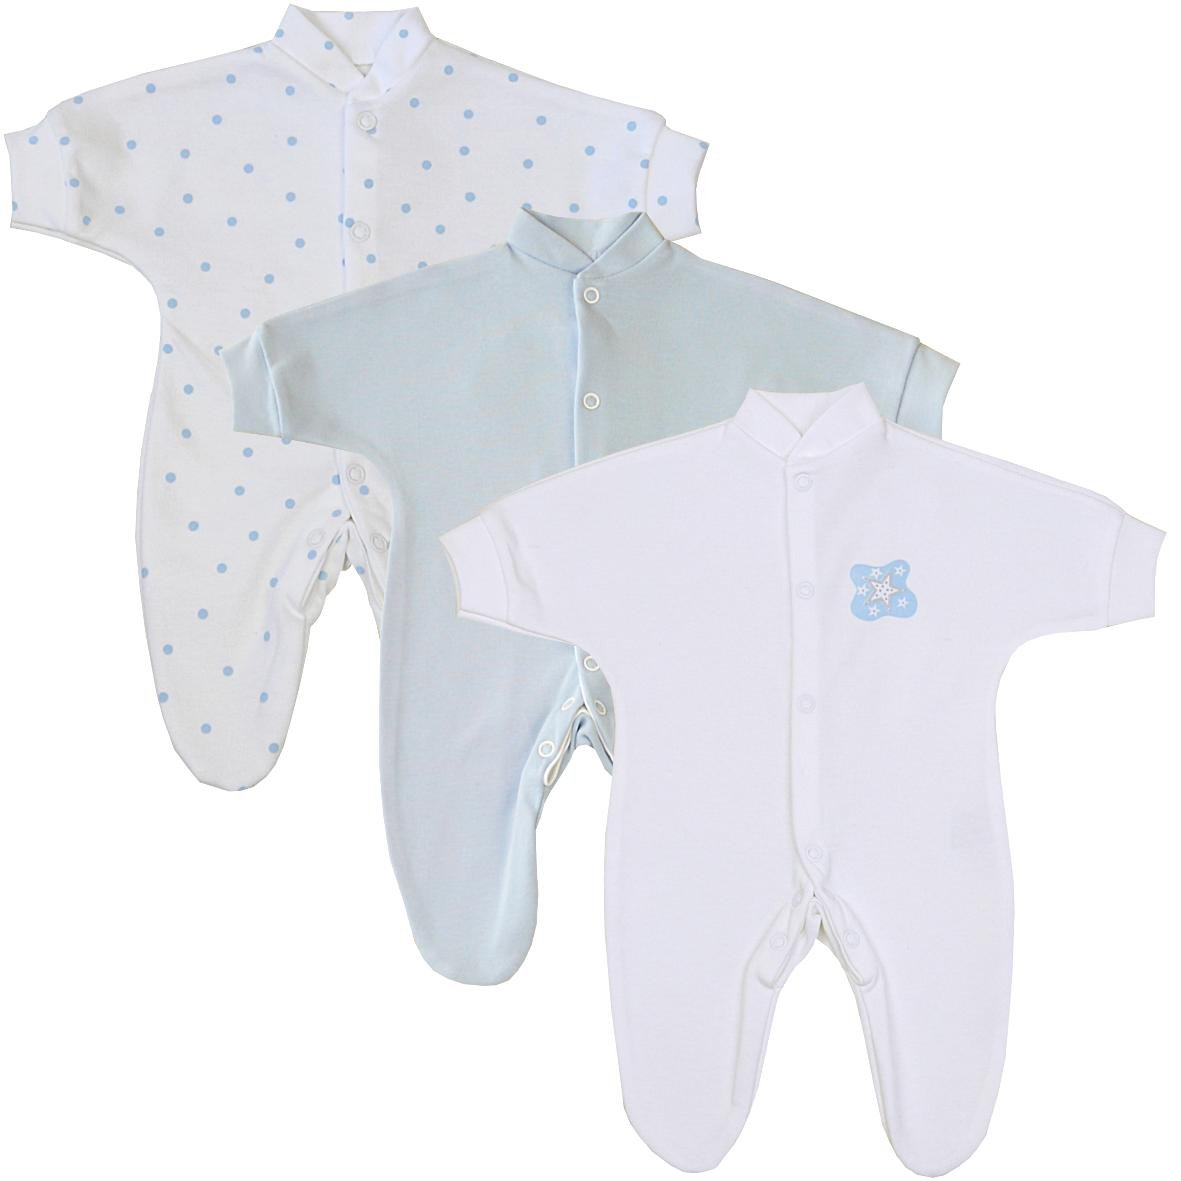 Babygros upto 1.5lb,3.5lb,5.5lb,7.5lb Blue Moon /& Stars Premature Early Baby Clothes Pack of 3 Sleepsuits